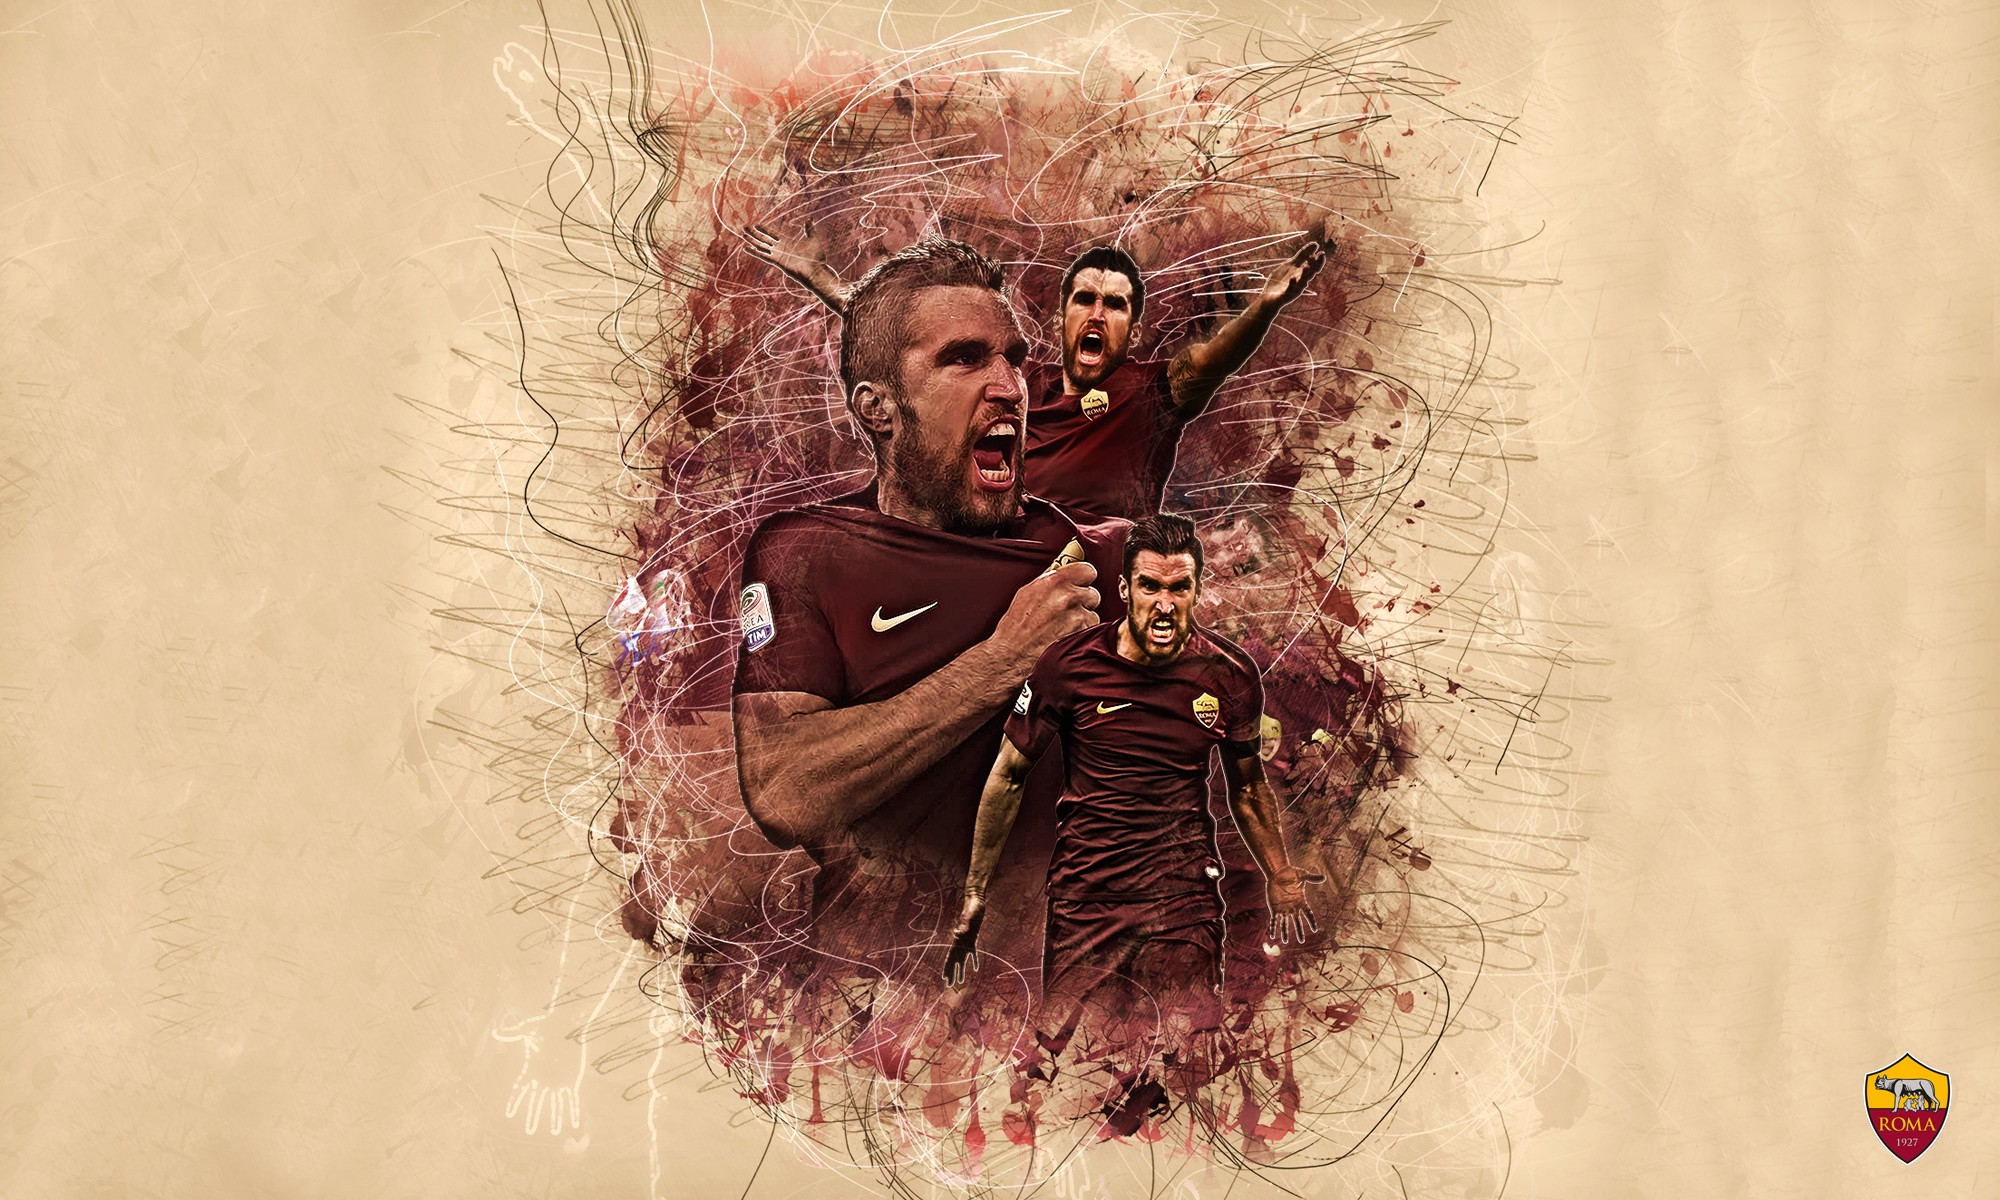 In Conversation Kevin Strootman reflects on the highs & lows of